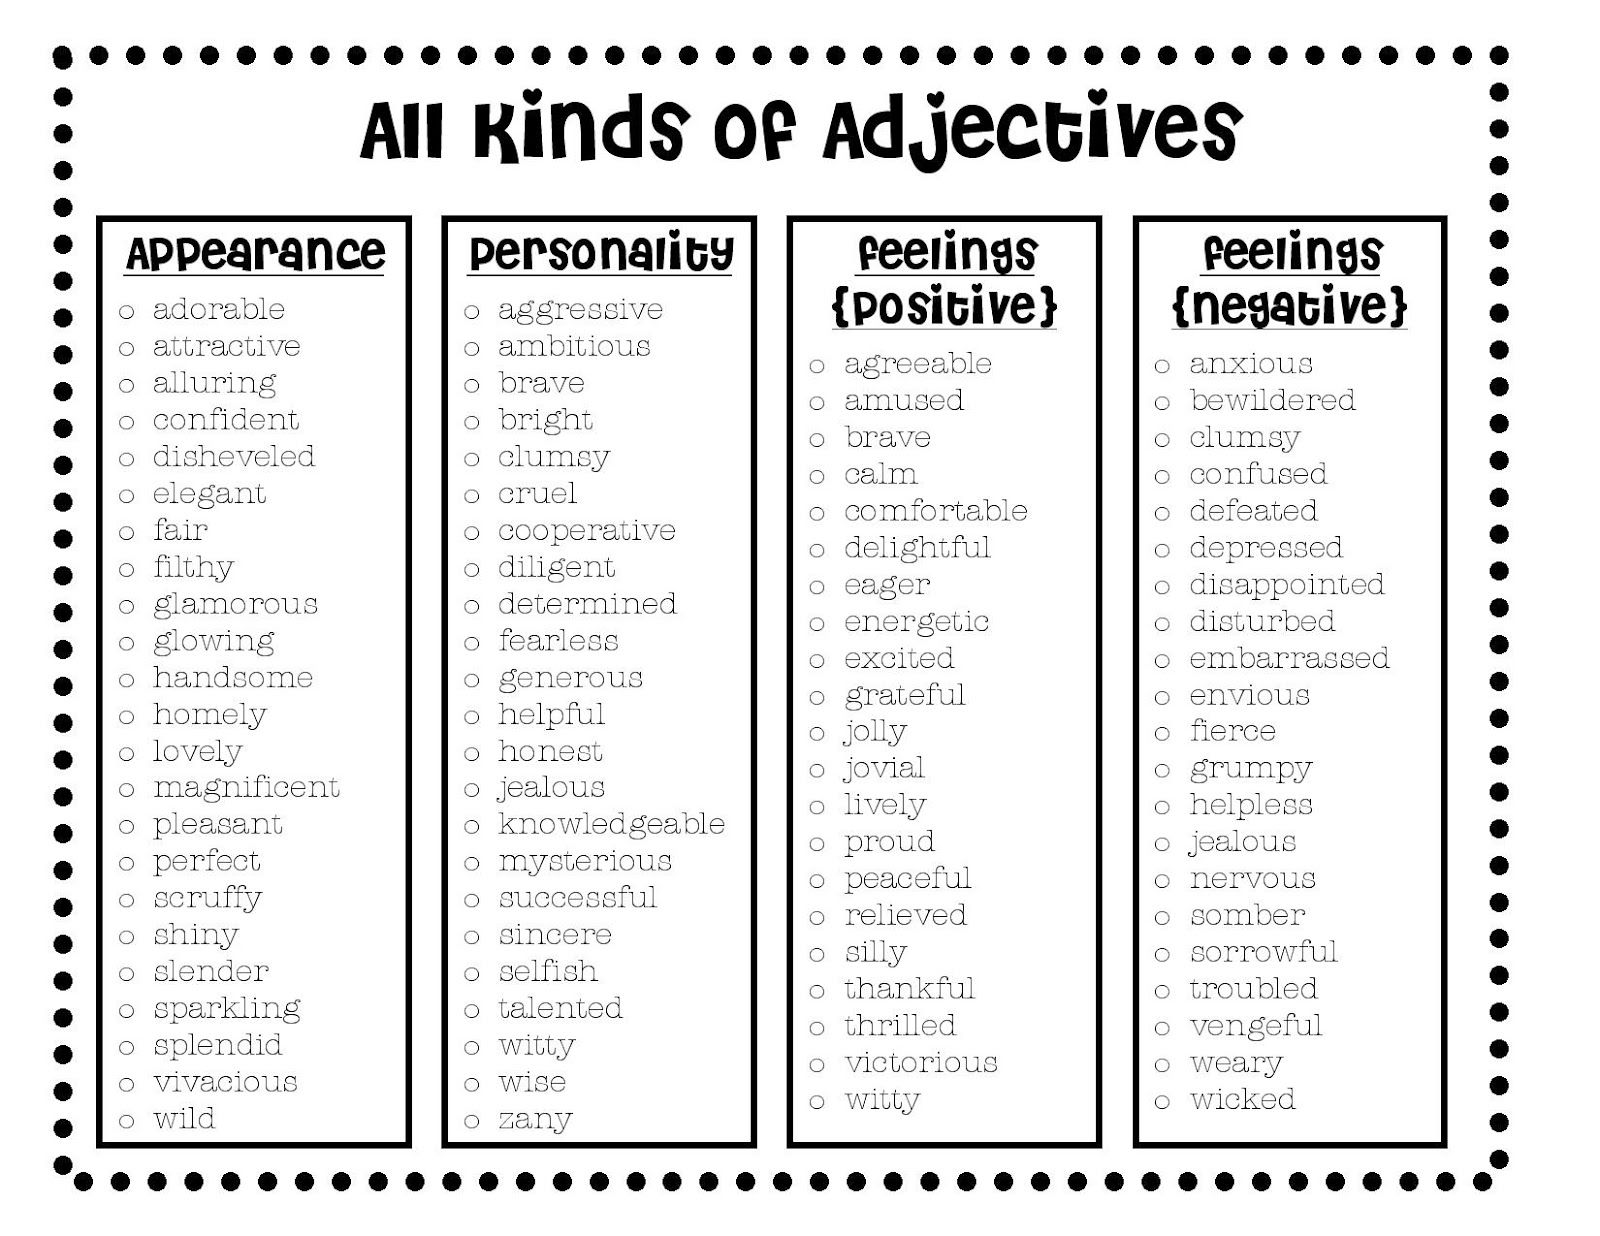 all kinds of adjectives from the esl experience tesol resources all kinds of adjectives for describing characters and their traits including appearance personality and their feelings great for a writing lesson for on